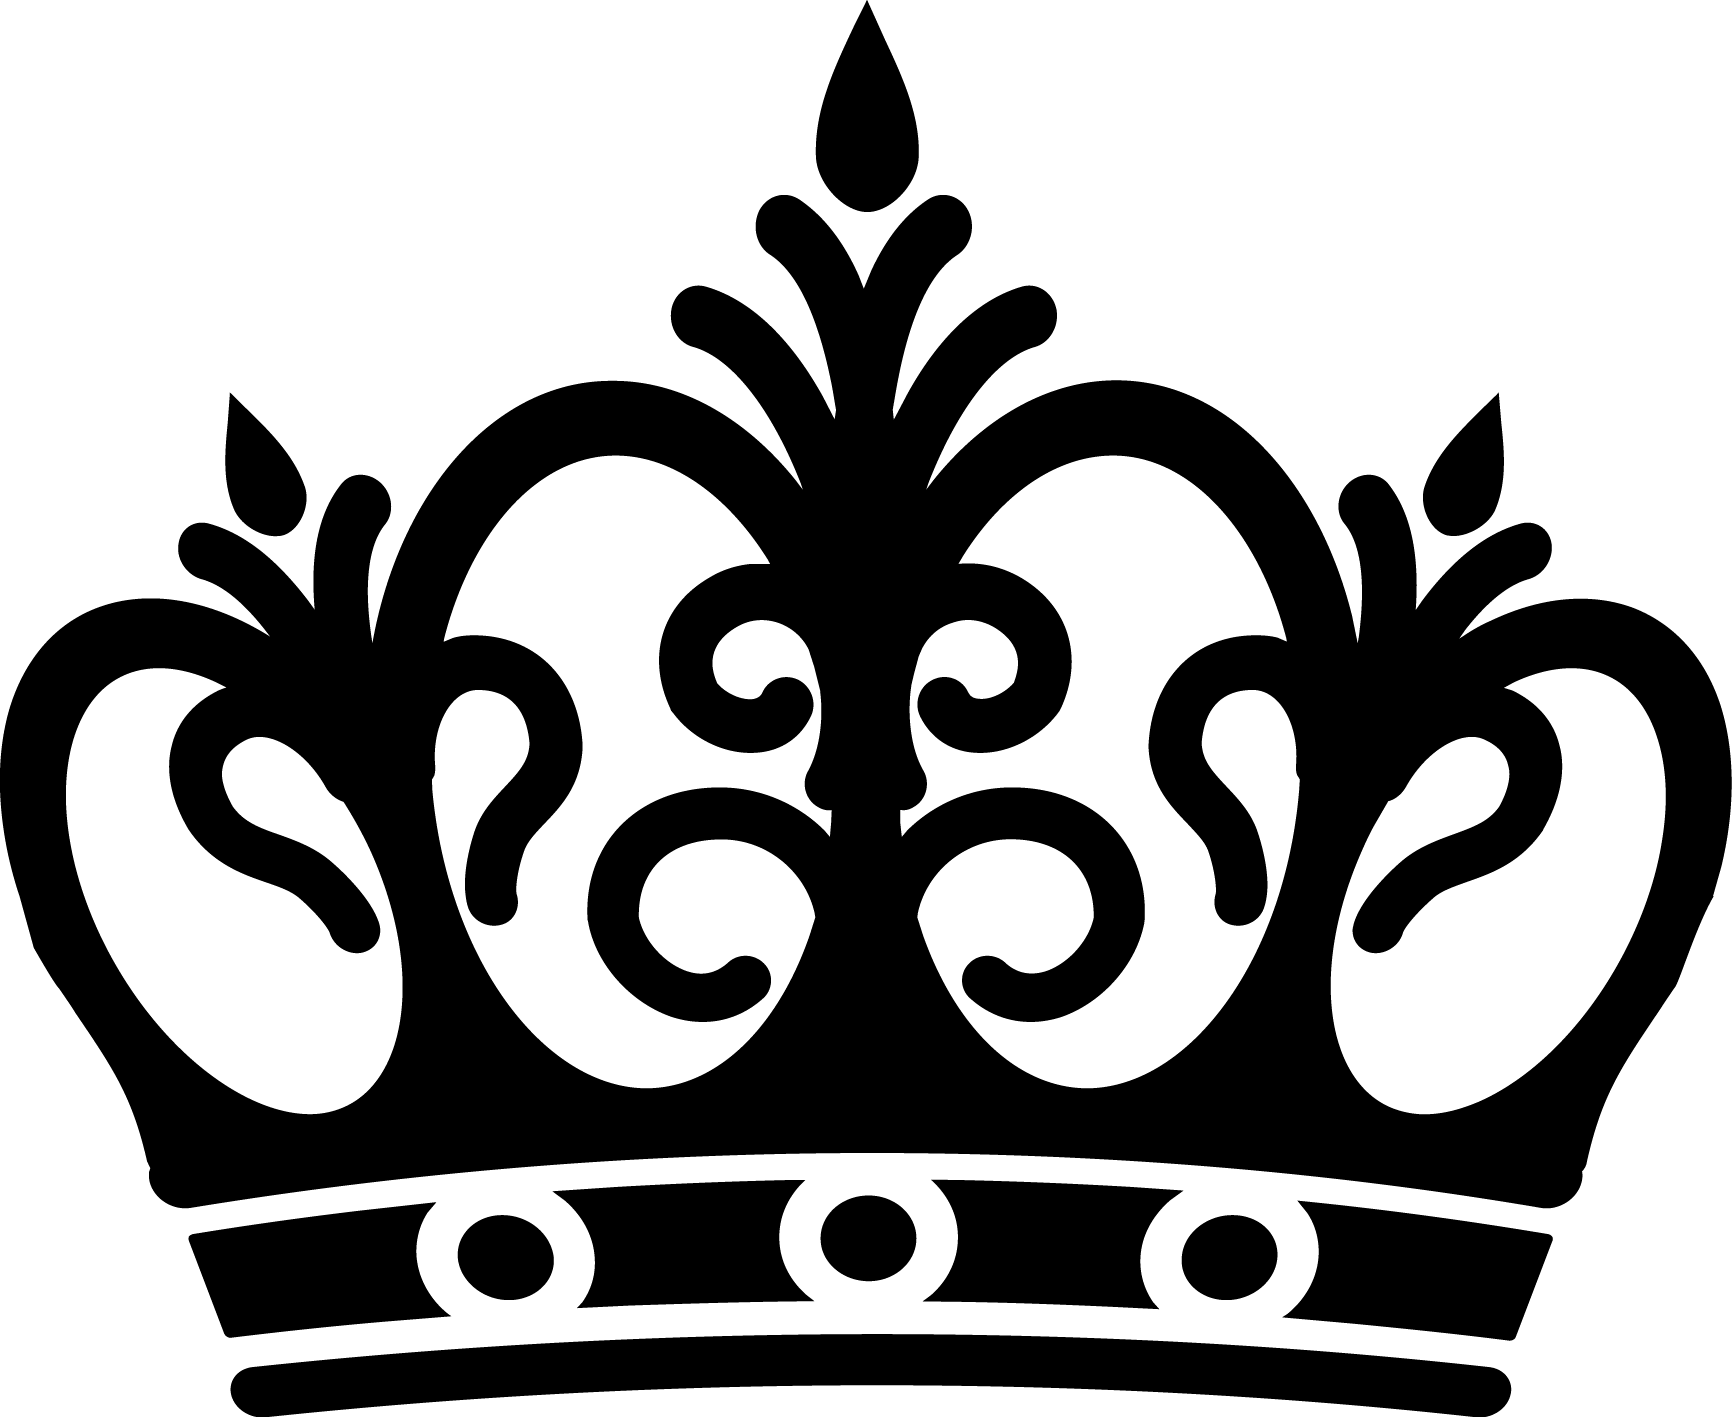 Crown royal crown clipart clip art library download crown vector png - Buscar con Google | Tatuajes | Pinterest | Crown ... clip art library download